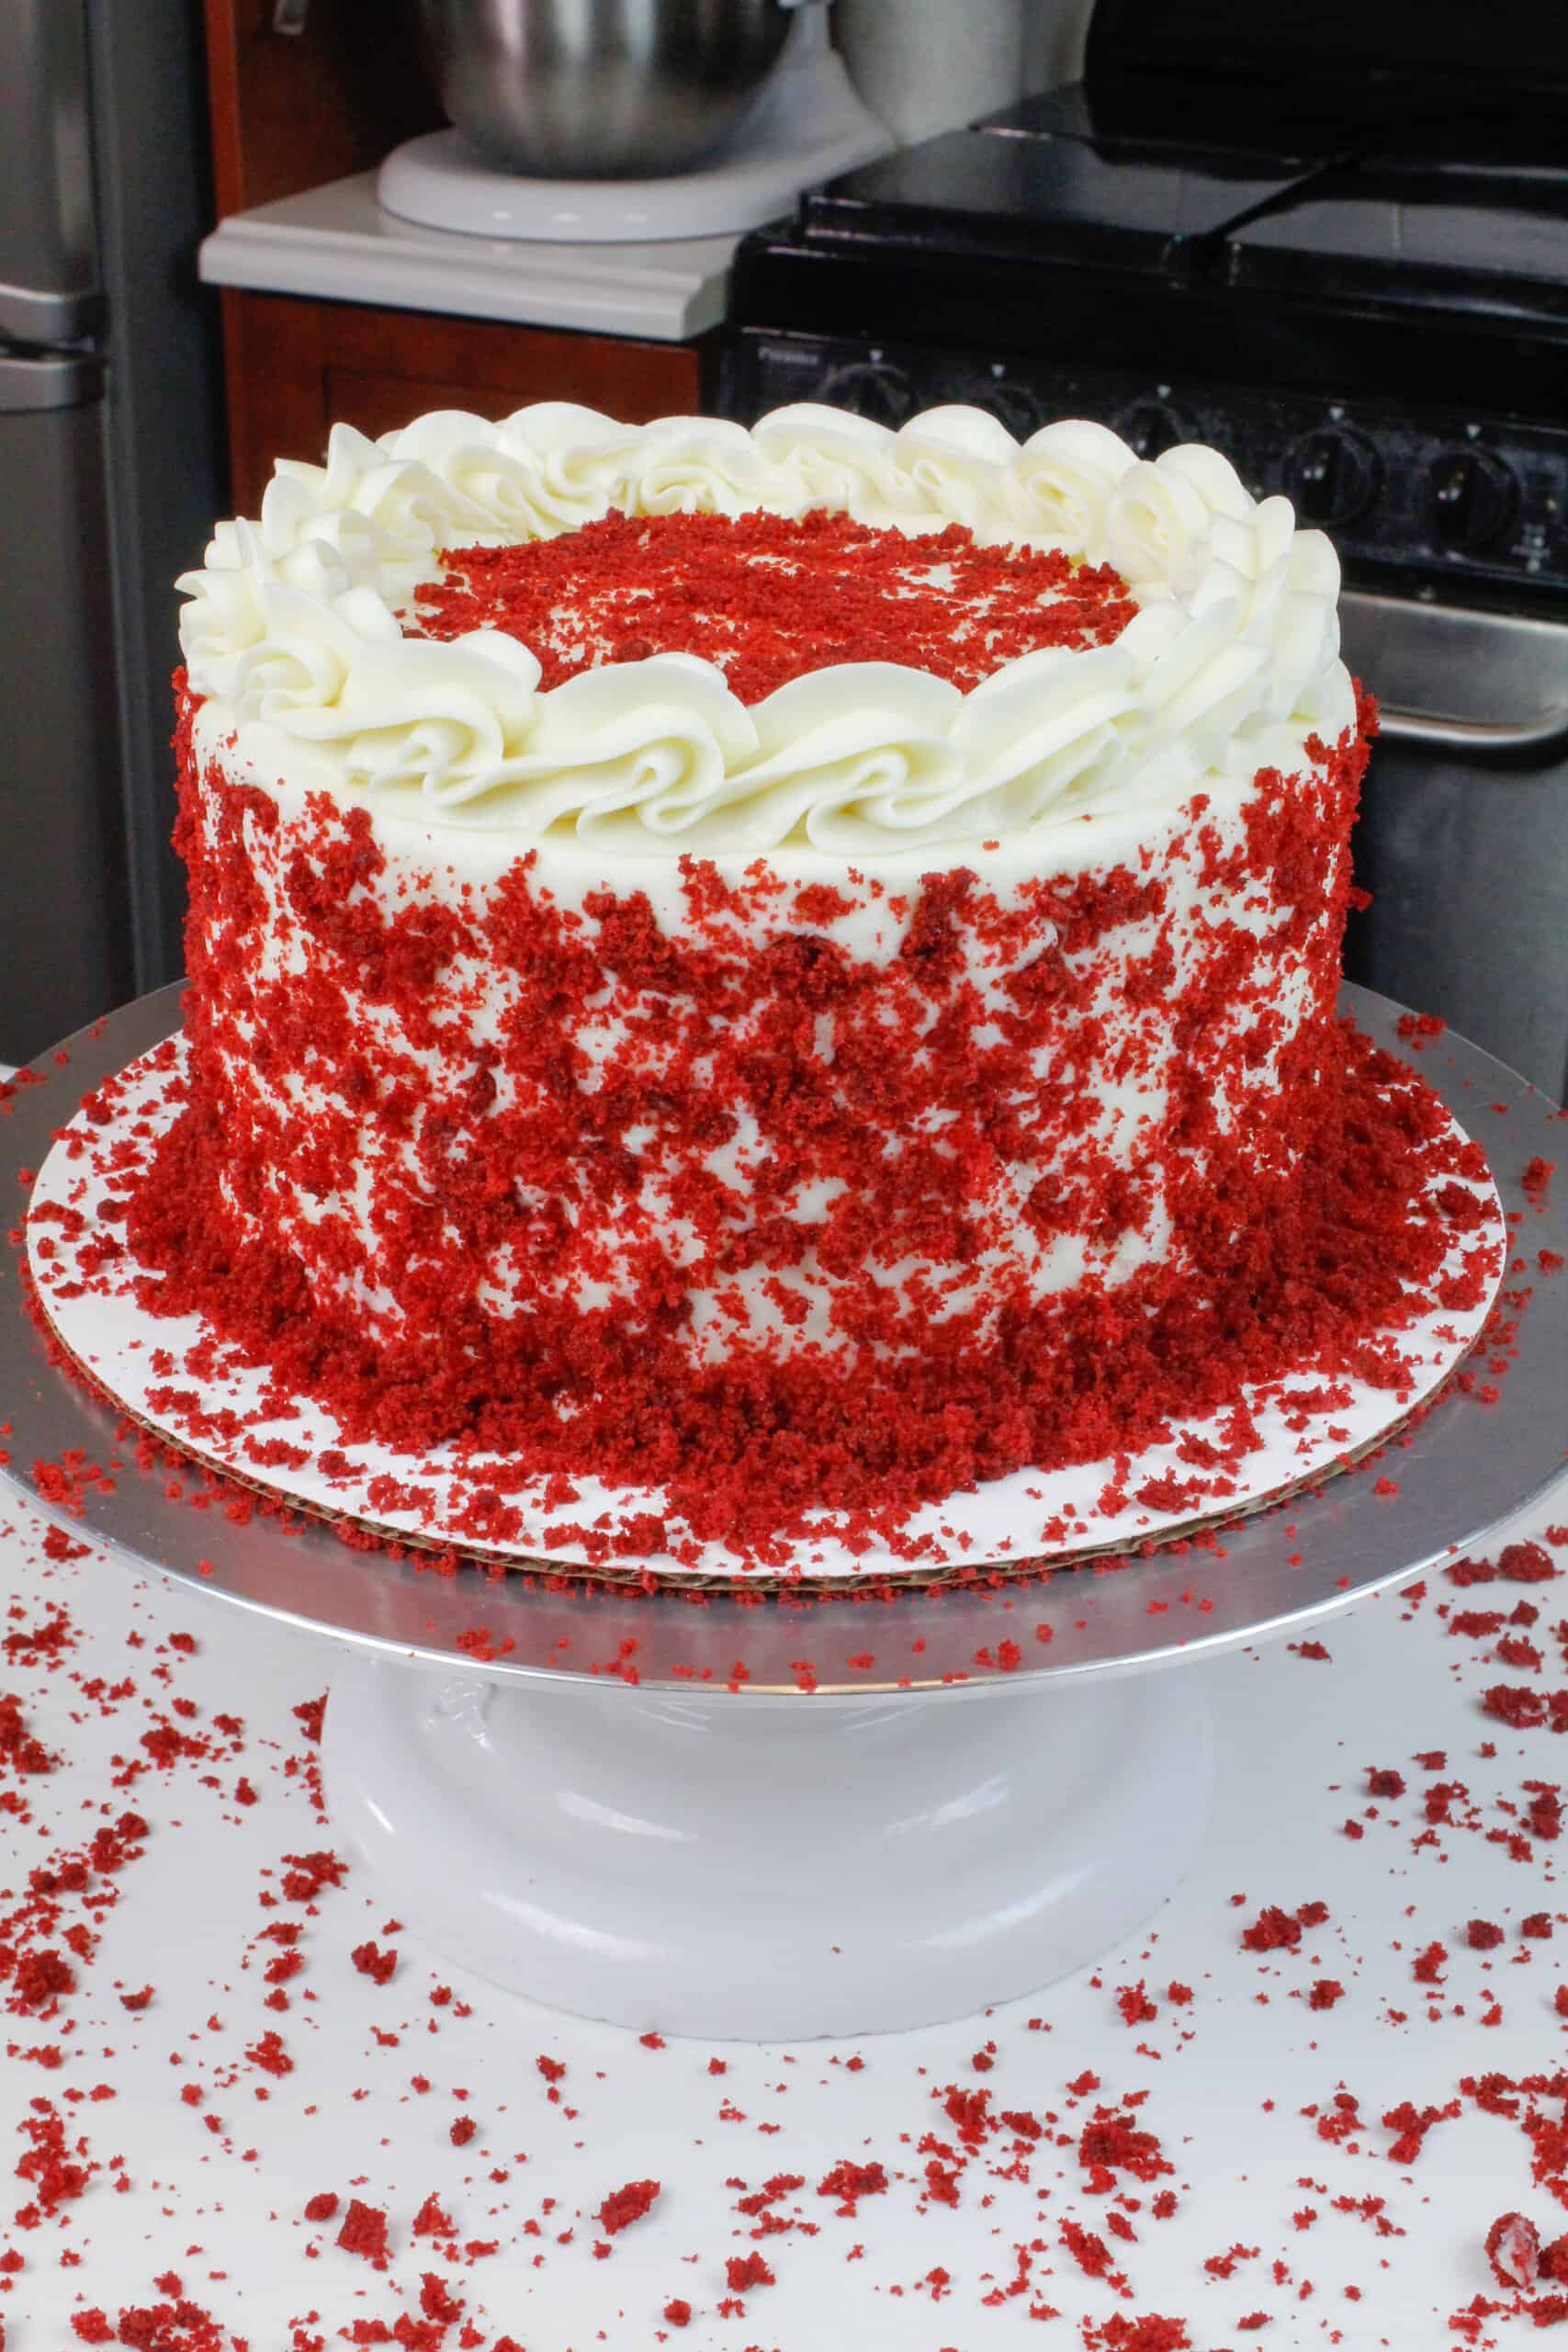 image of moist red velvet cake, decorated with reserved red velvet crumbs